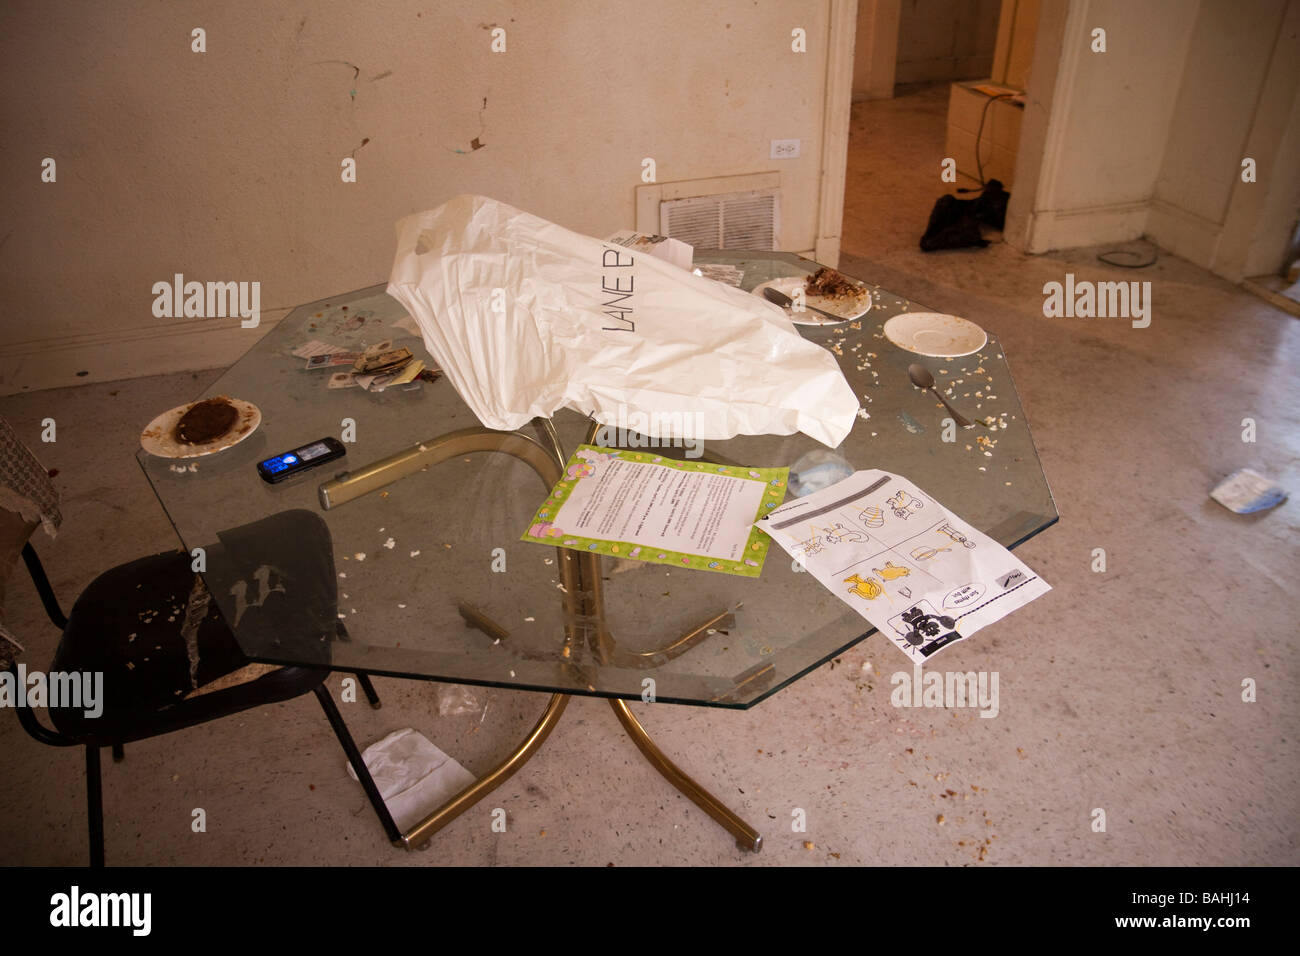 Filthy table in drug dealer's home. People living here was using and selling heroin. - Stock Image